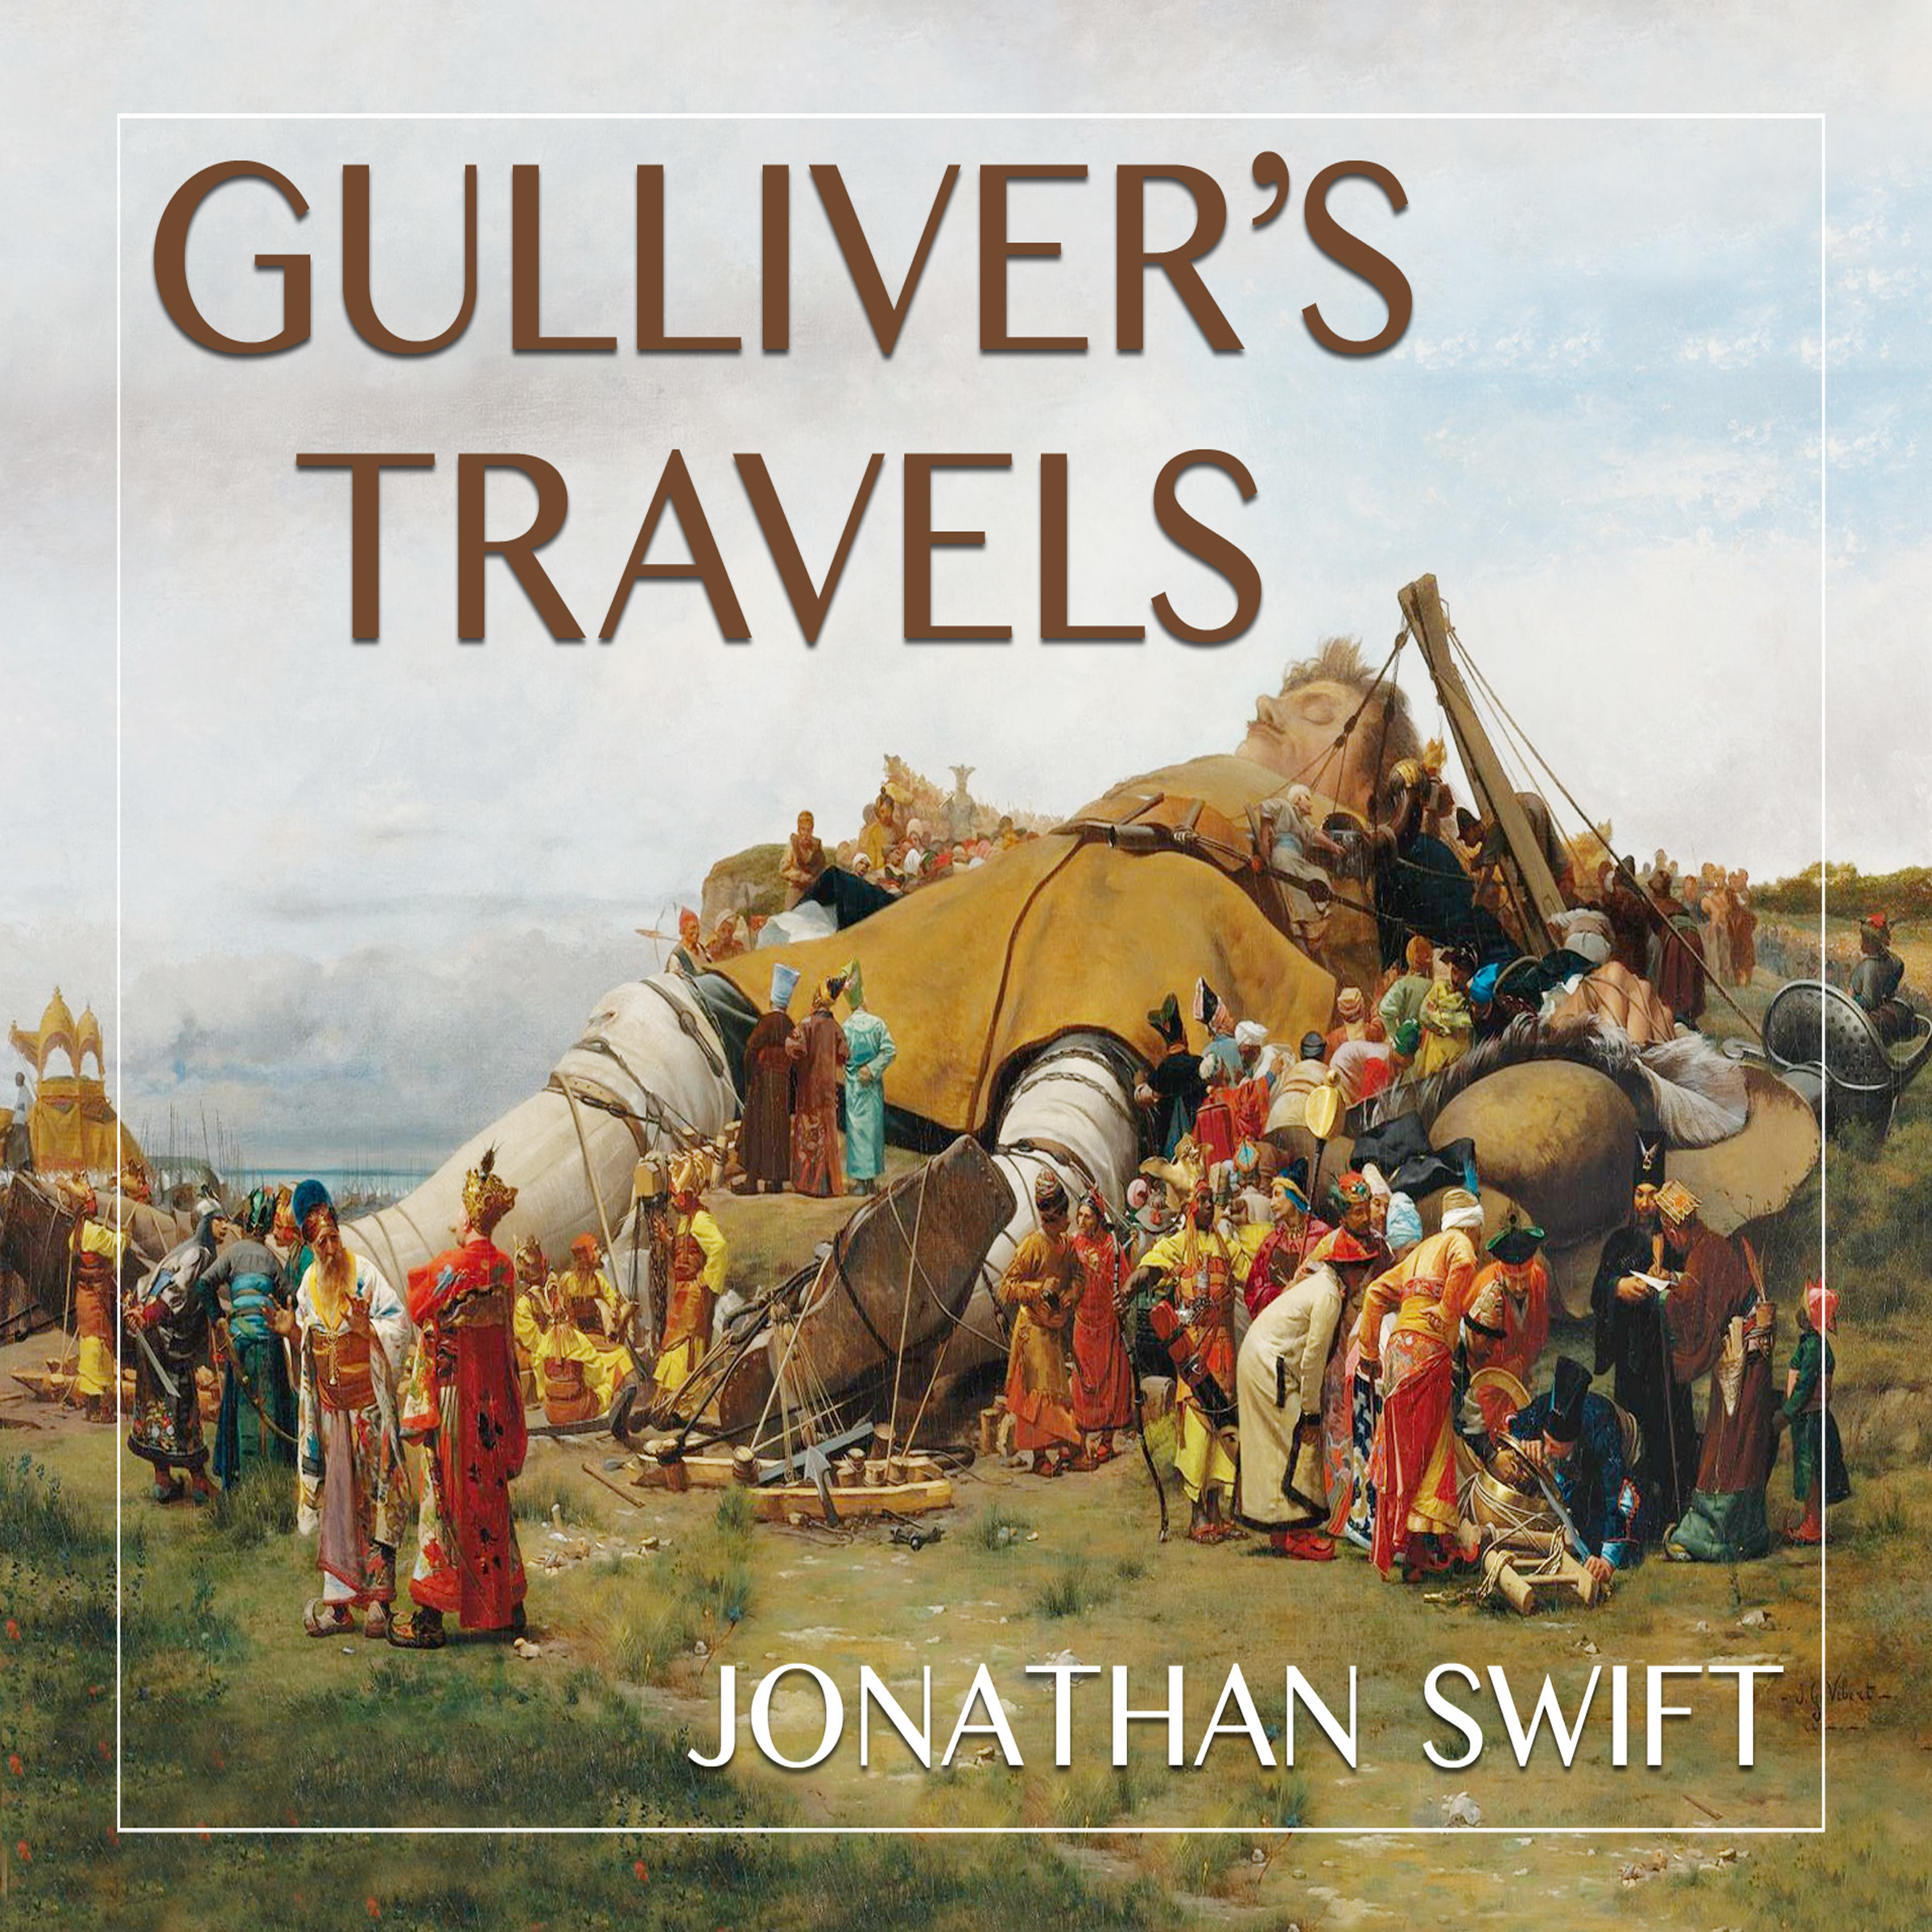 Gulliver S Travels Book Cover Drawing : Gulliver s travels audiobook by jonathan swift read